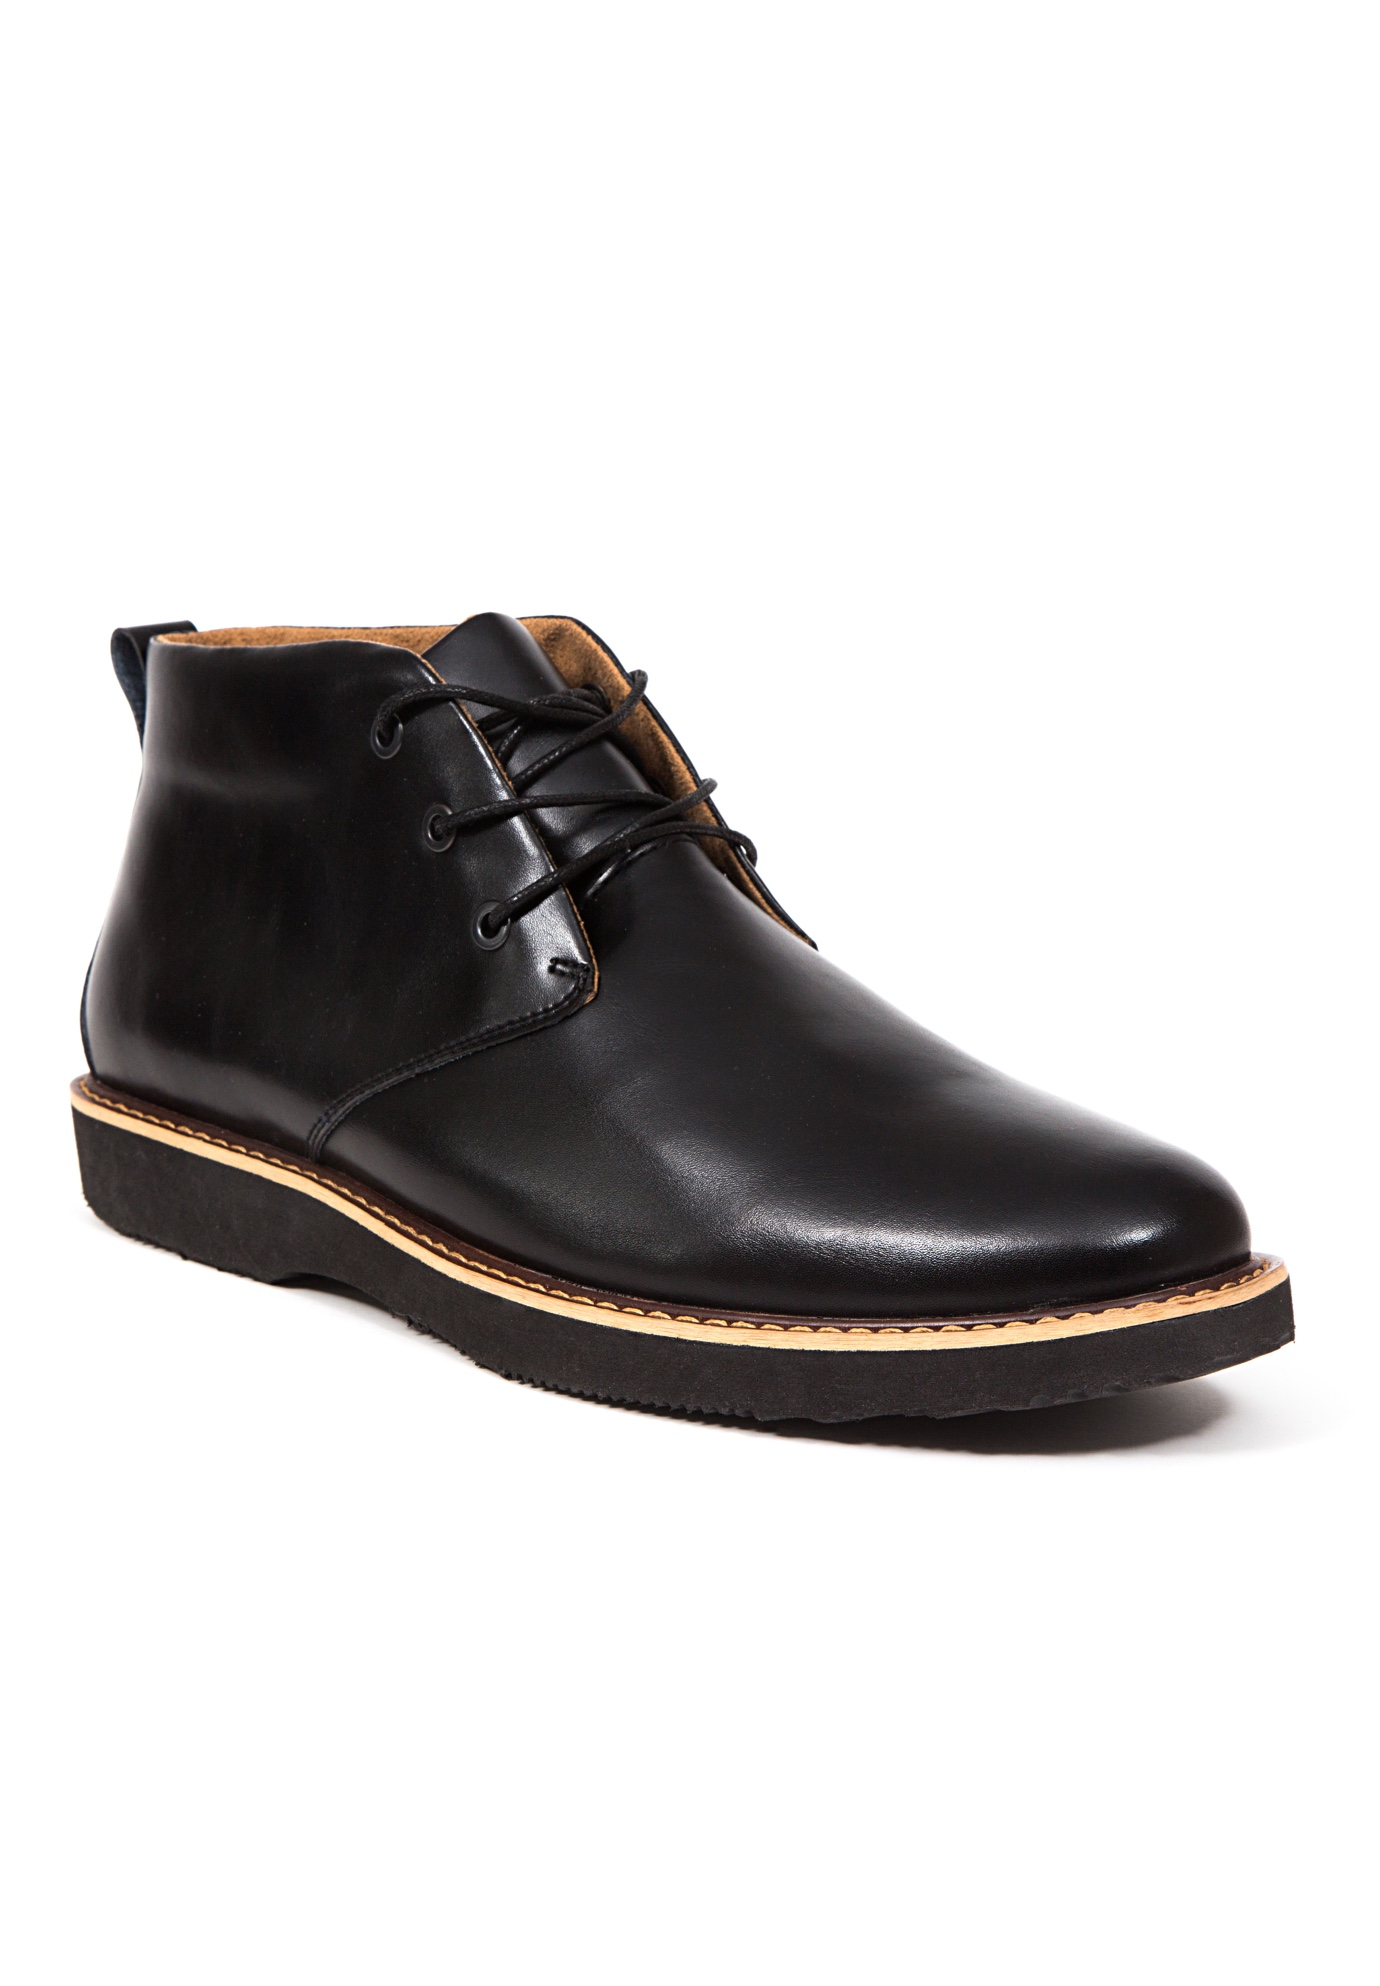 leather shoes with memory foam